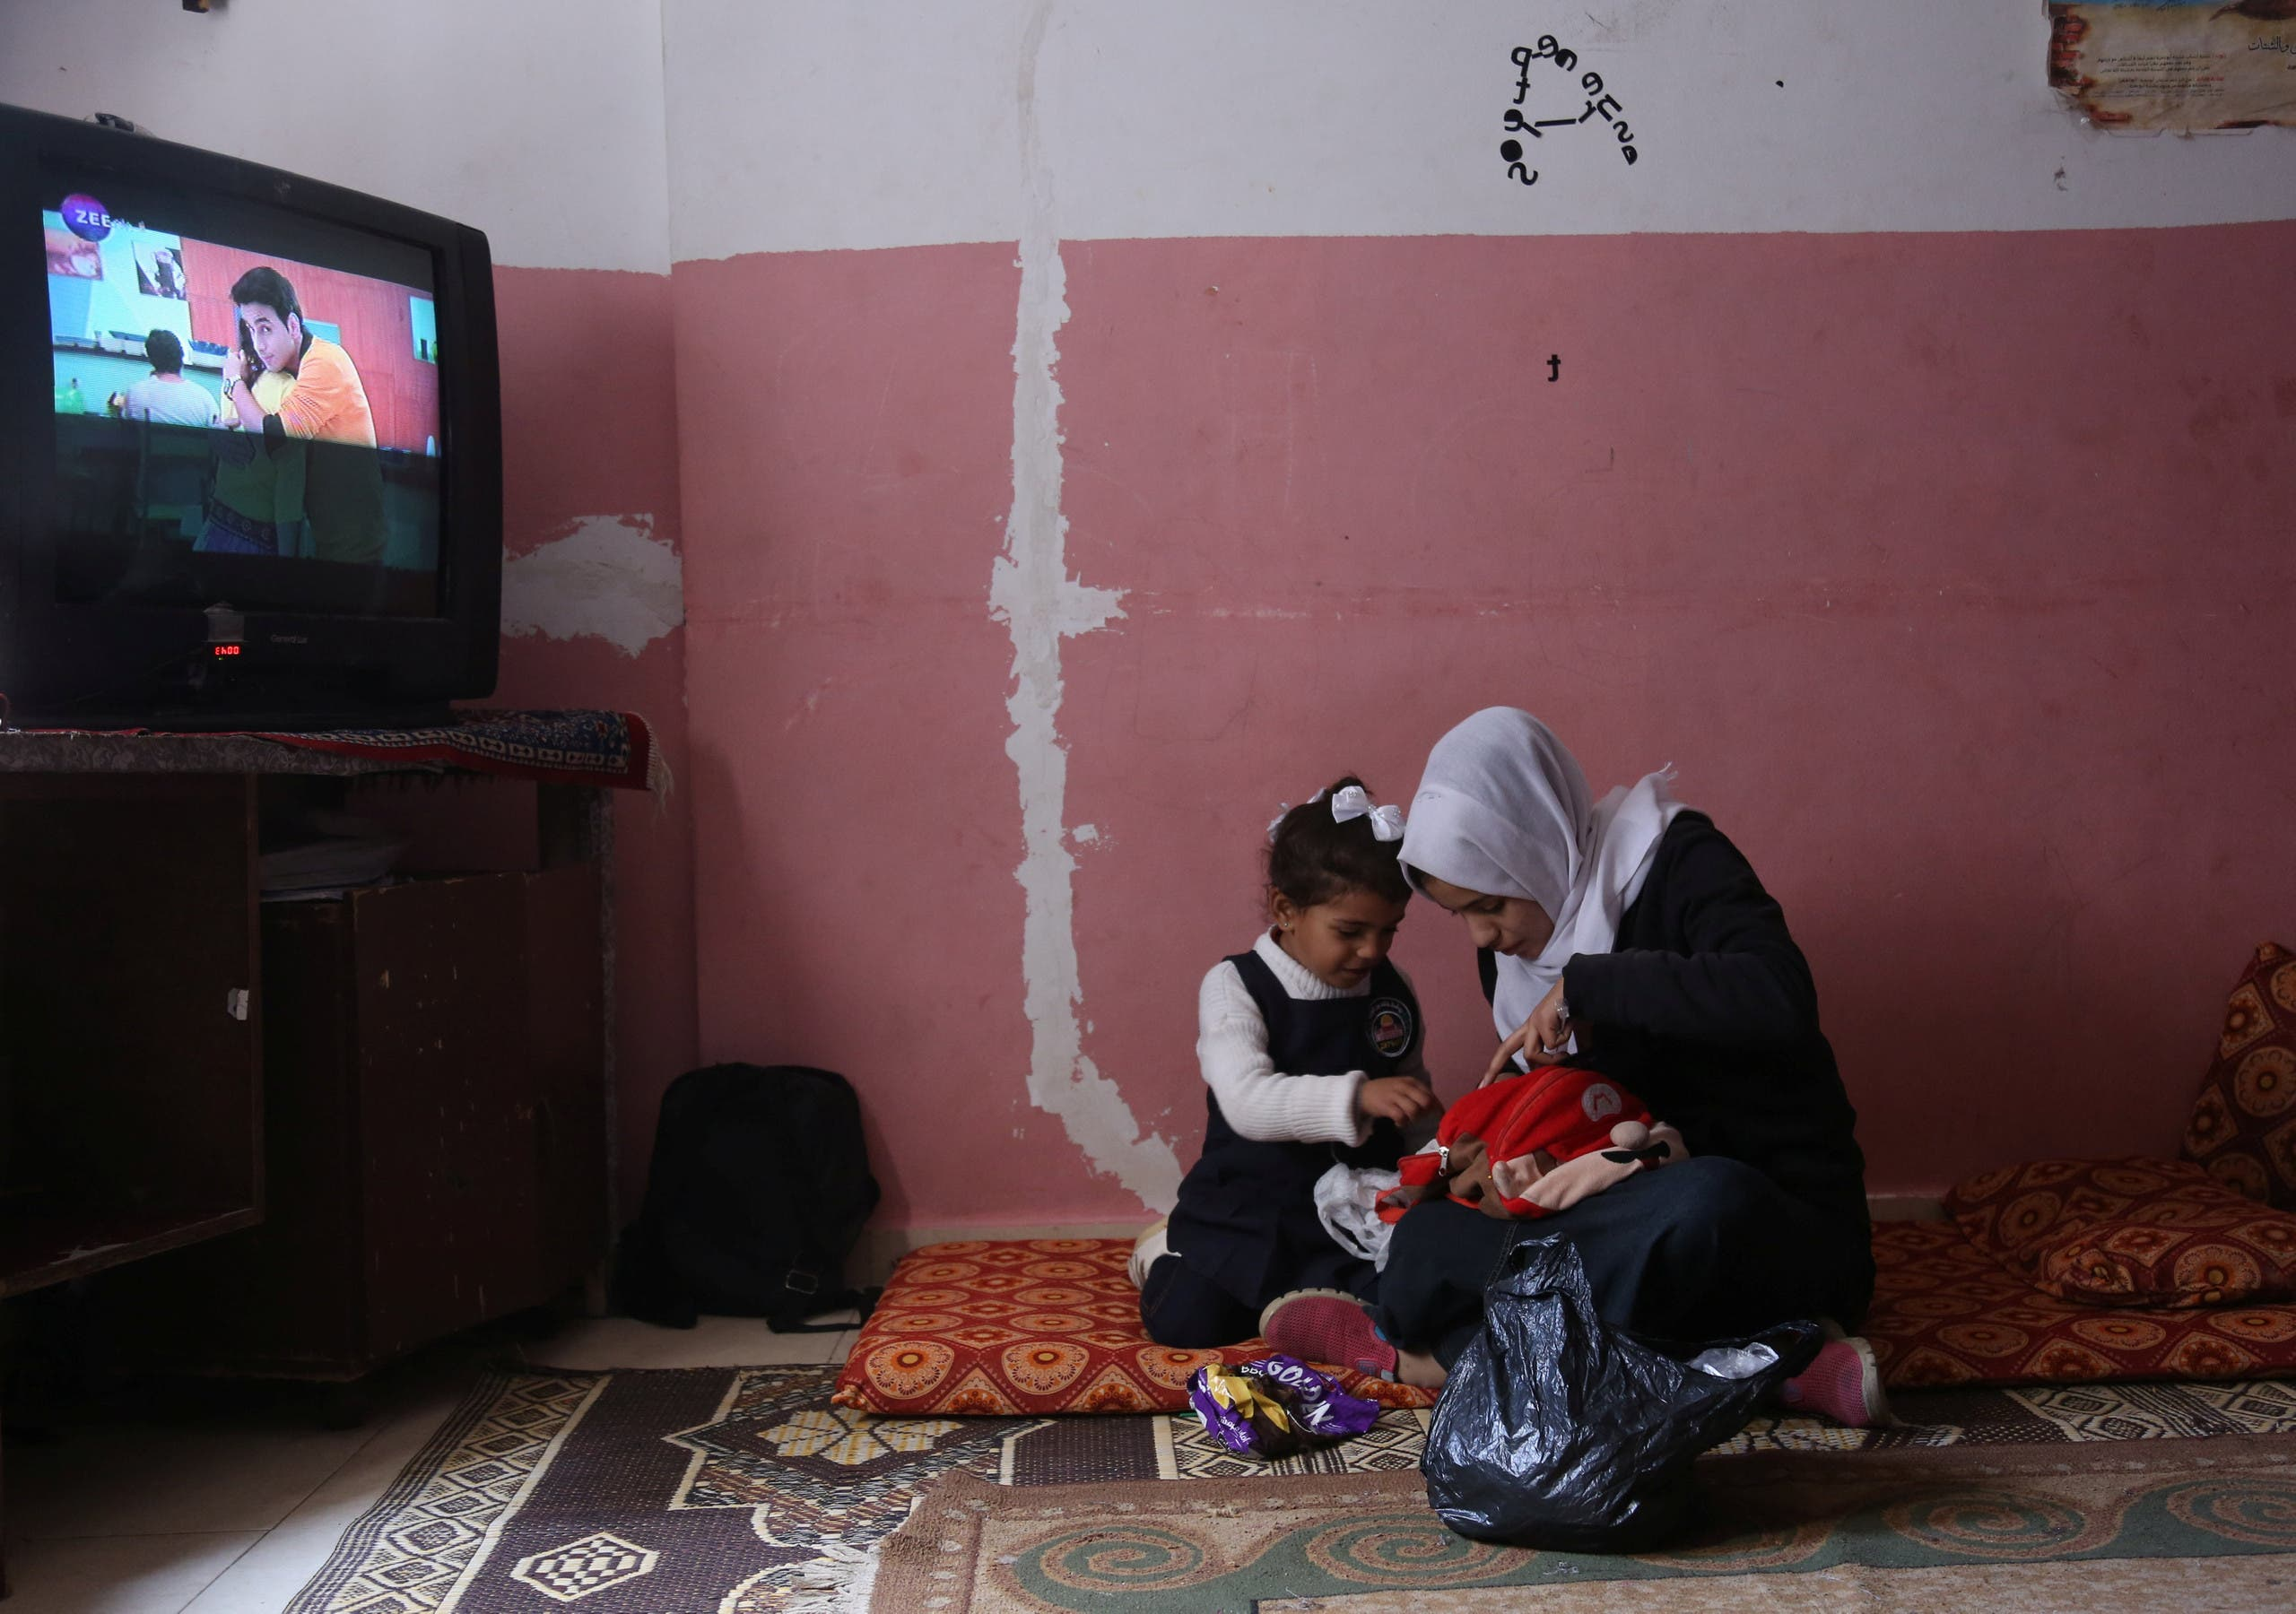 Palestinian high school student Wessal Abu Amra, 17, plays with her sister in their family house, in Gaza City. (File photo: Reuters)